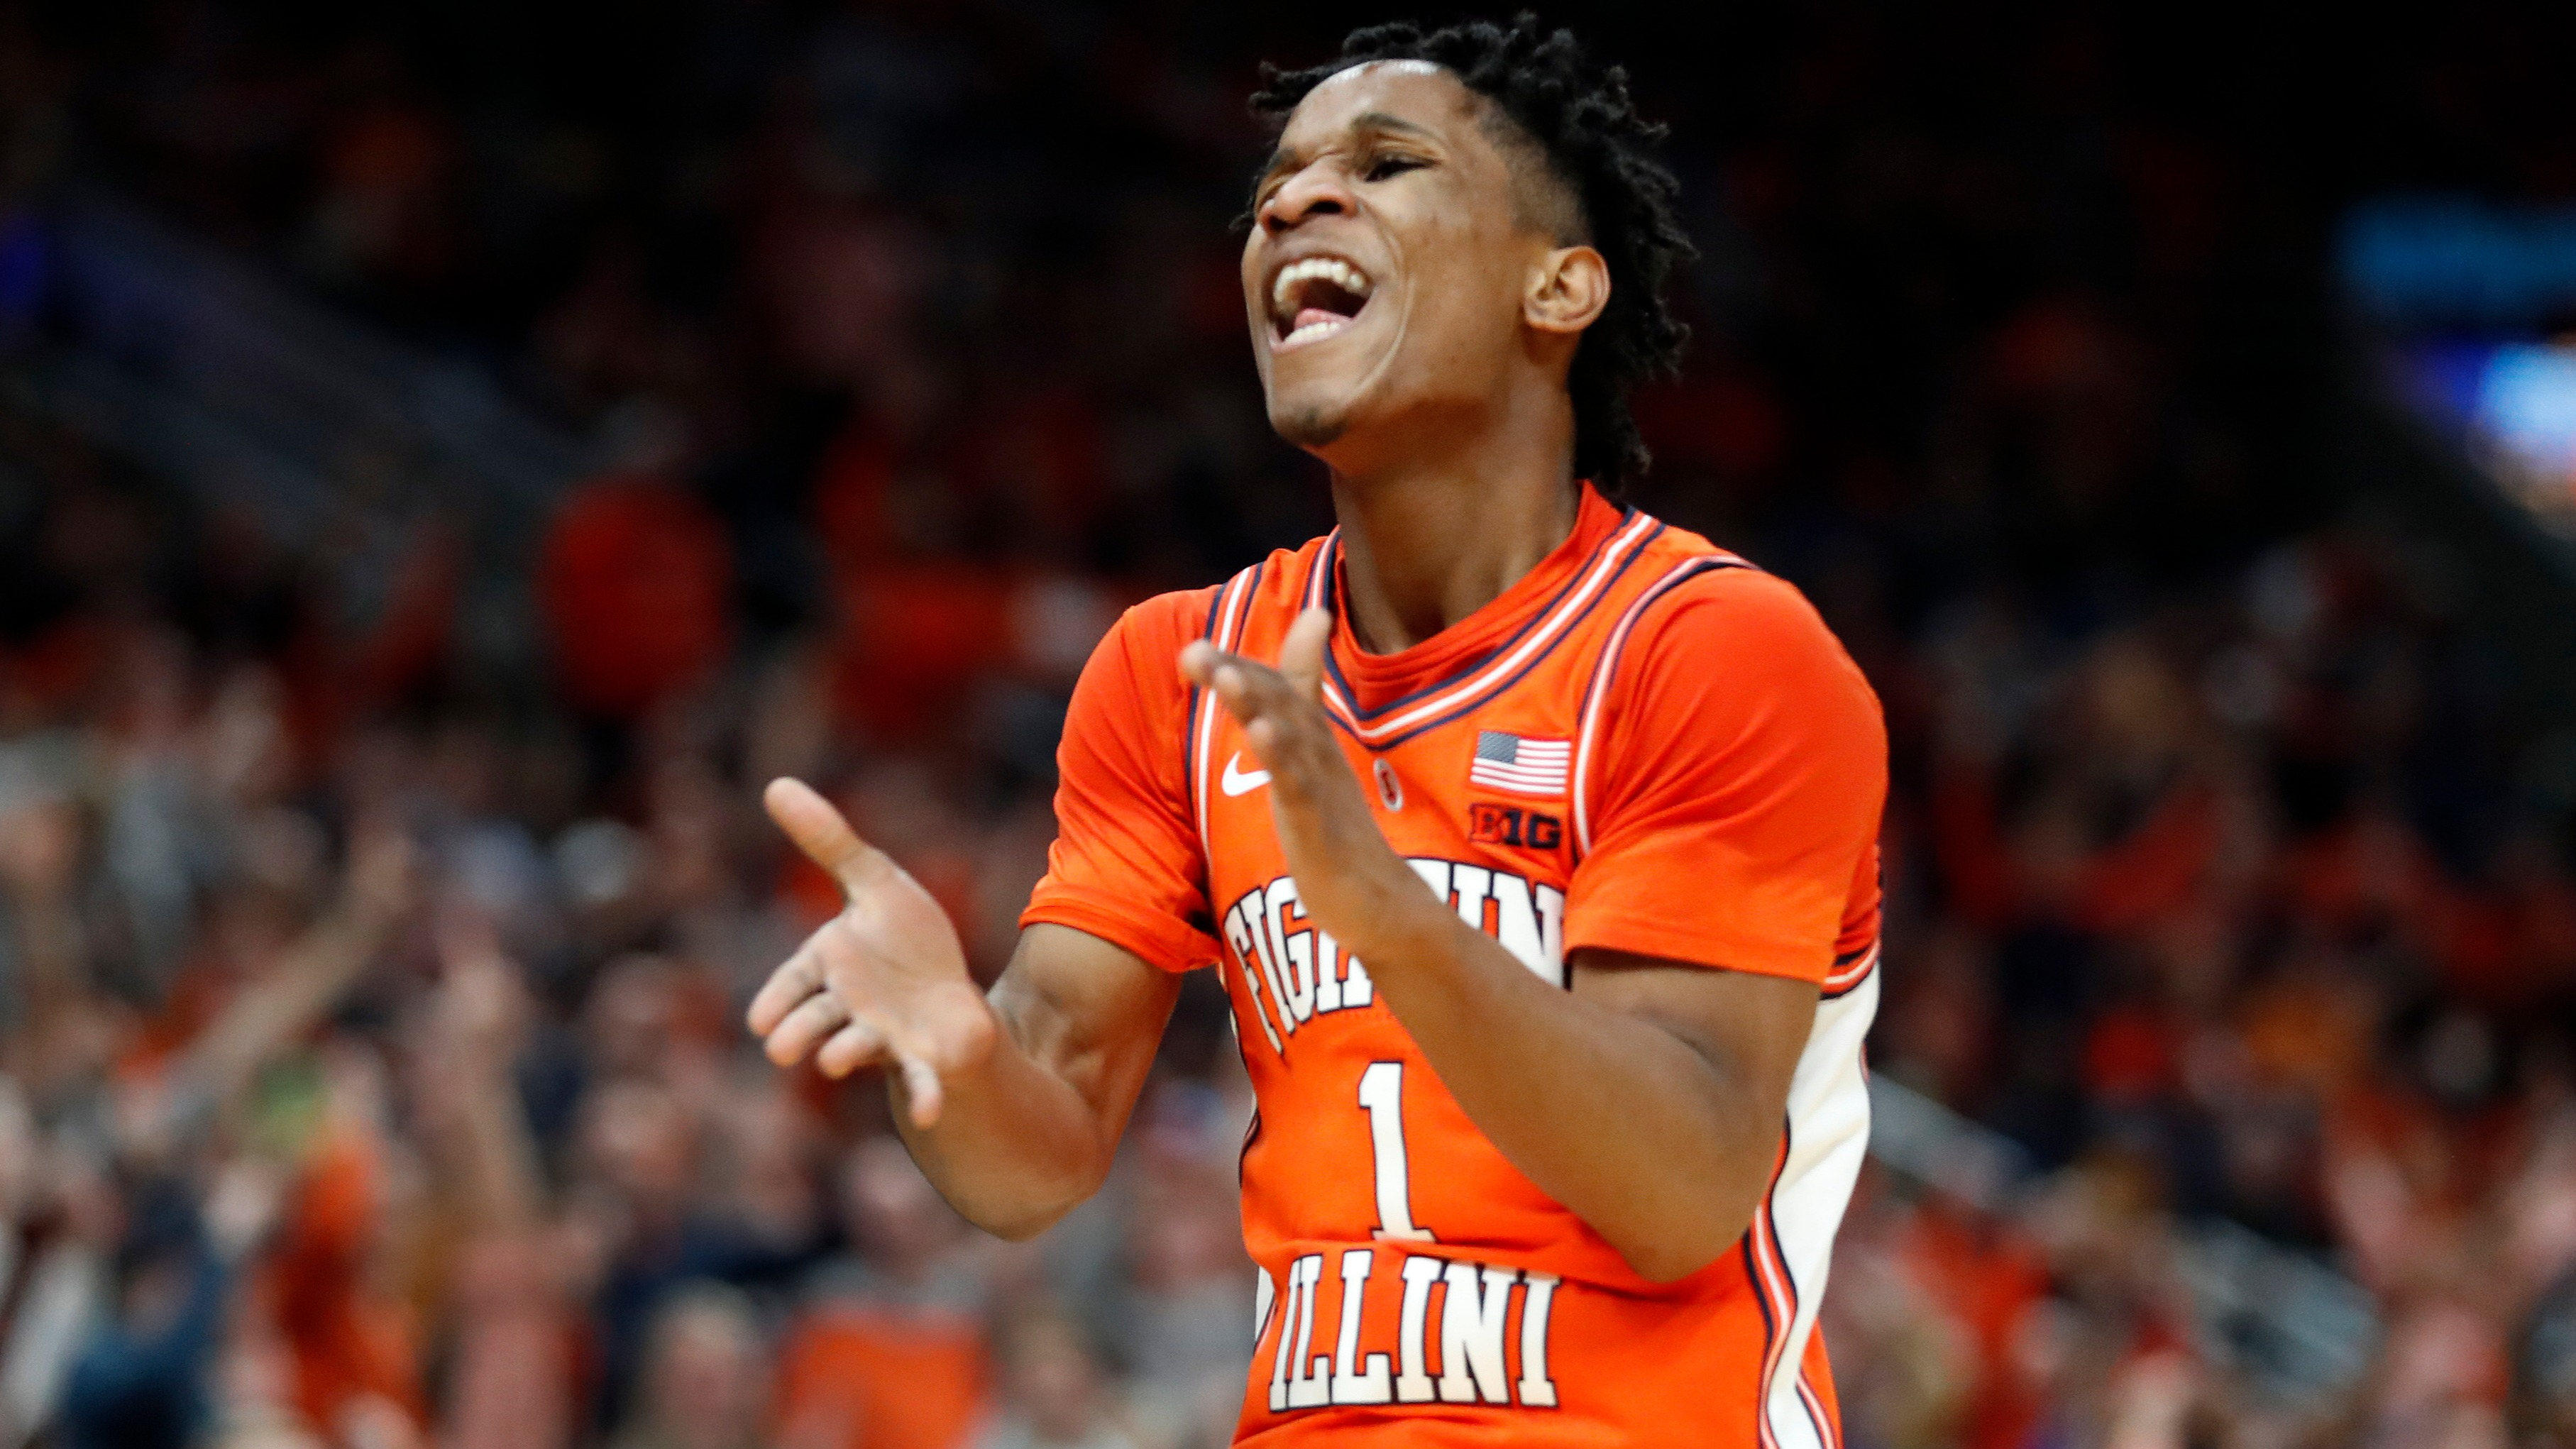 d7645e137784 Northwestern has lost 11 of its past 12 games and could have one of its  senior leaders at less than 100 percent as a 2-point underdog against  Illinois in ...